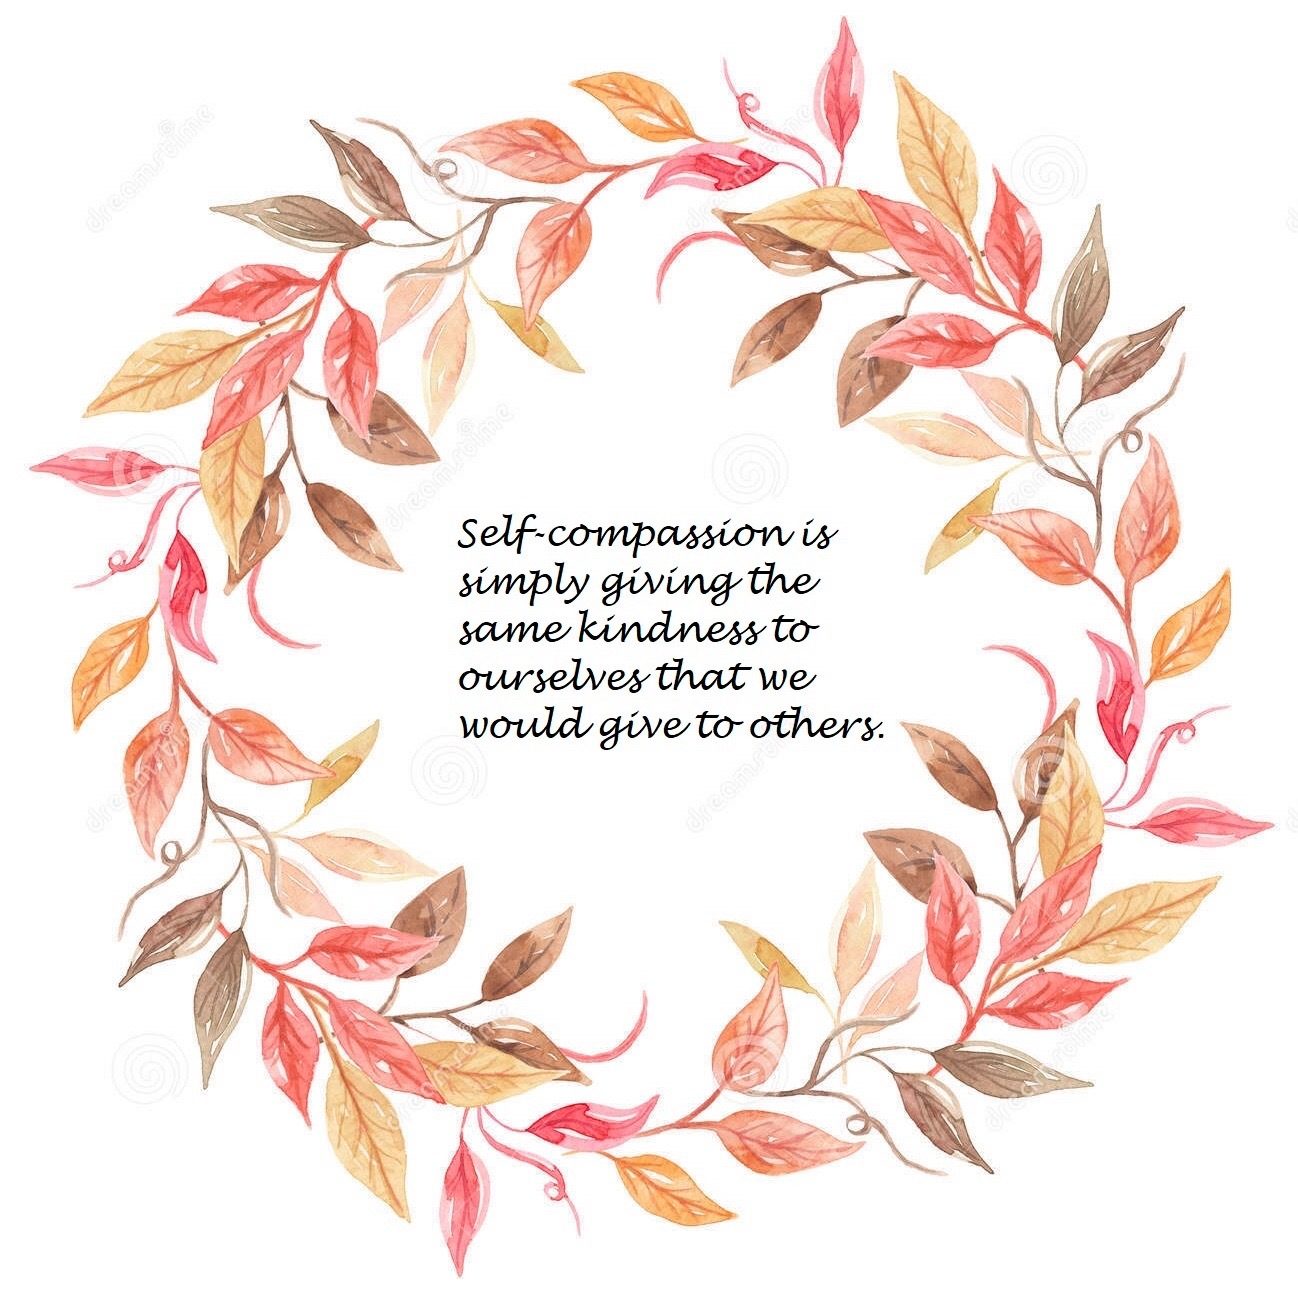 Image result for self-compassion